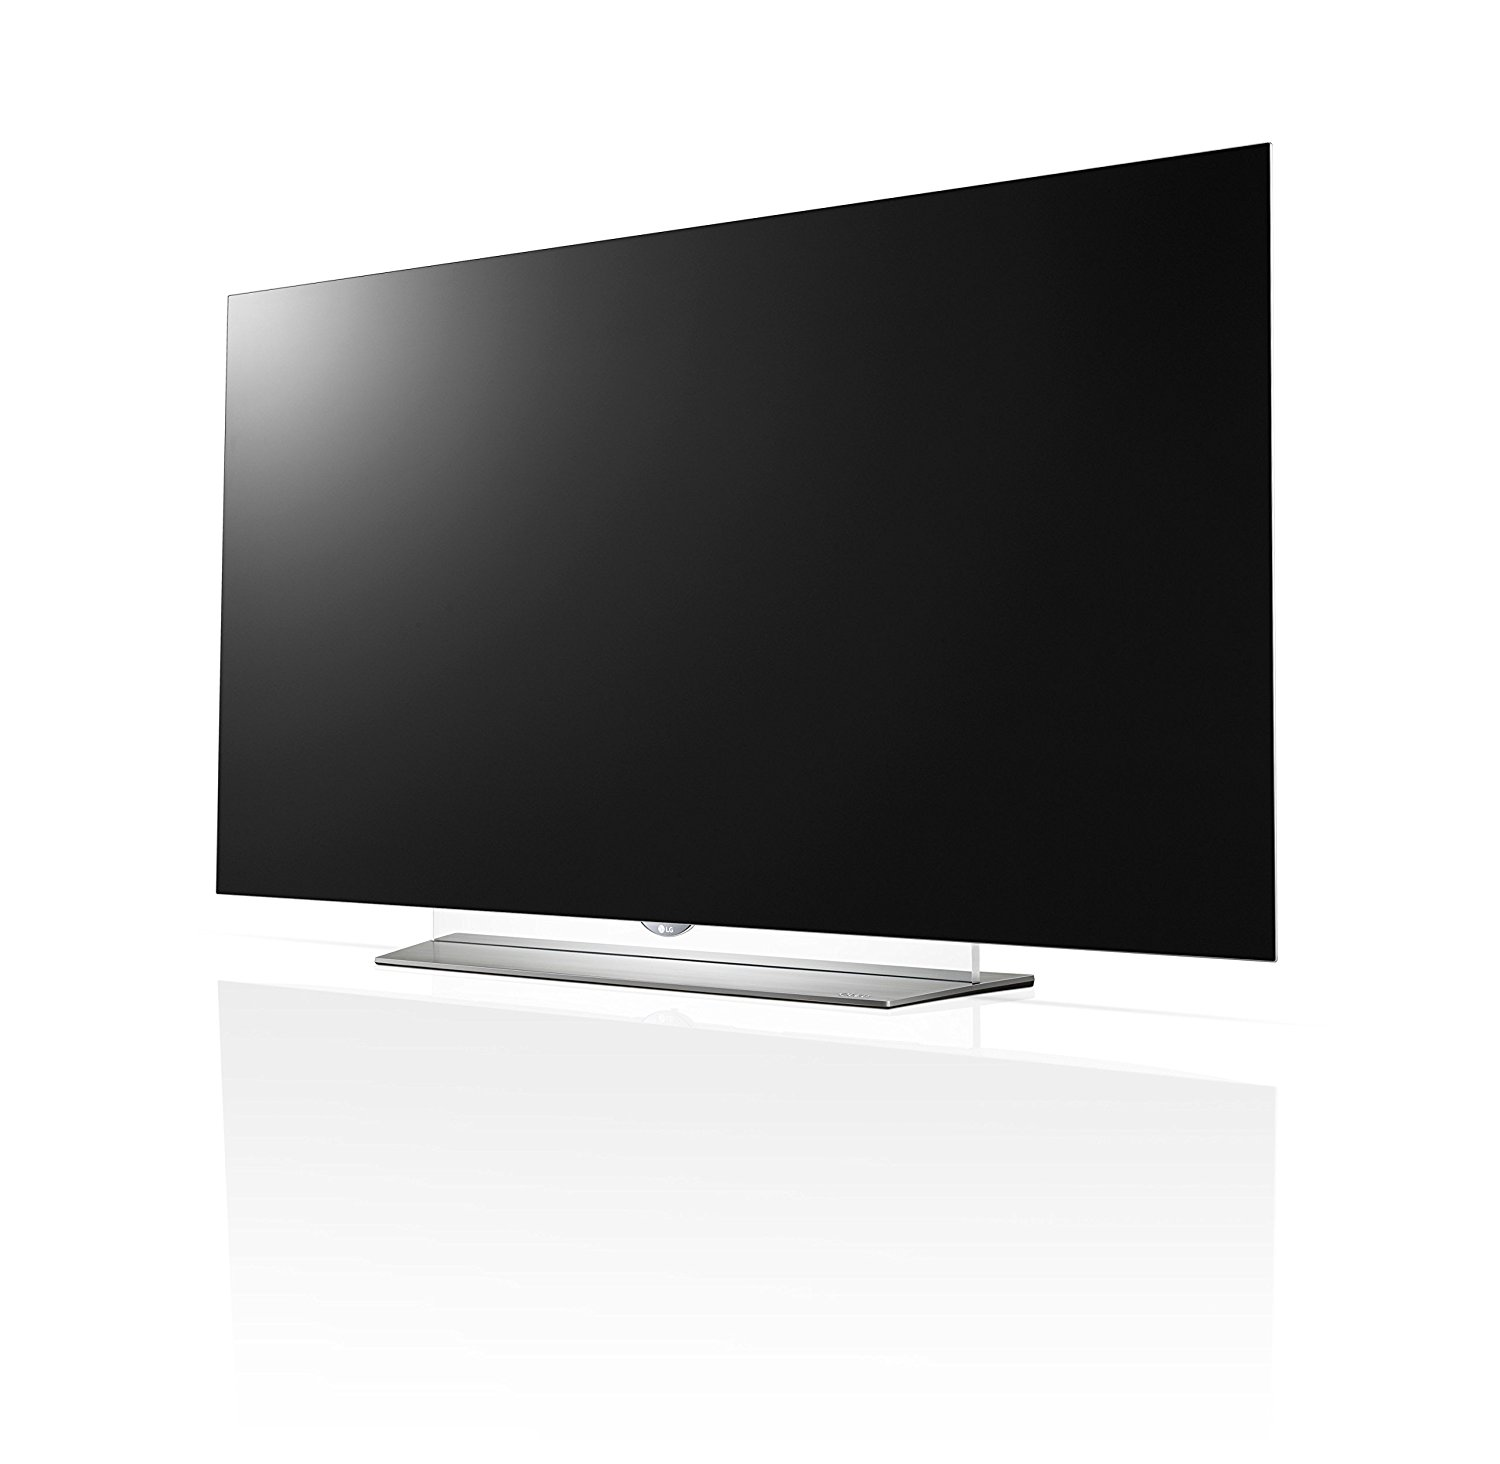 lg 65 2160p 4k ultra flat oled hdtv 120hz 65ef9500 check back soon blinq. Black Bedroom Furniture Sets. Home Design Ideas